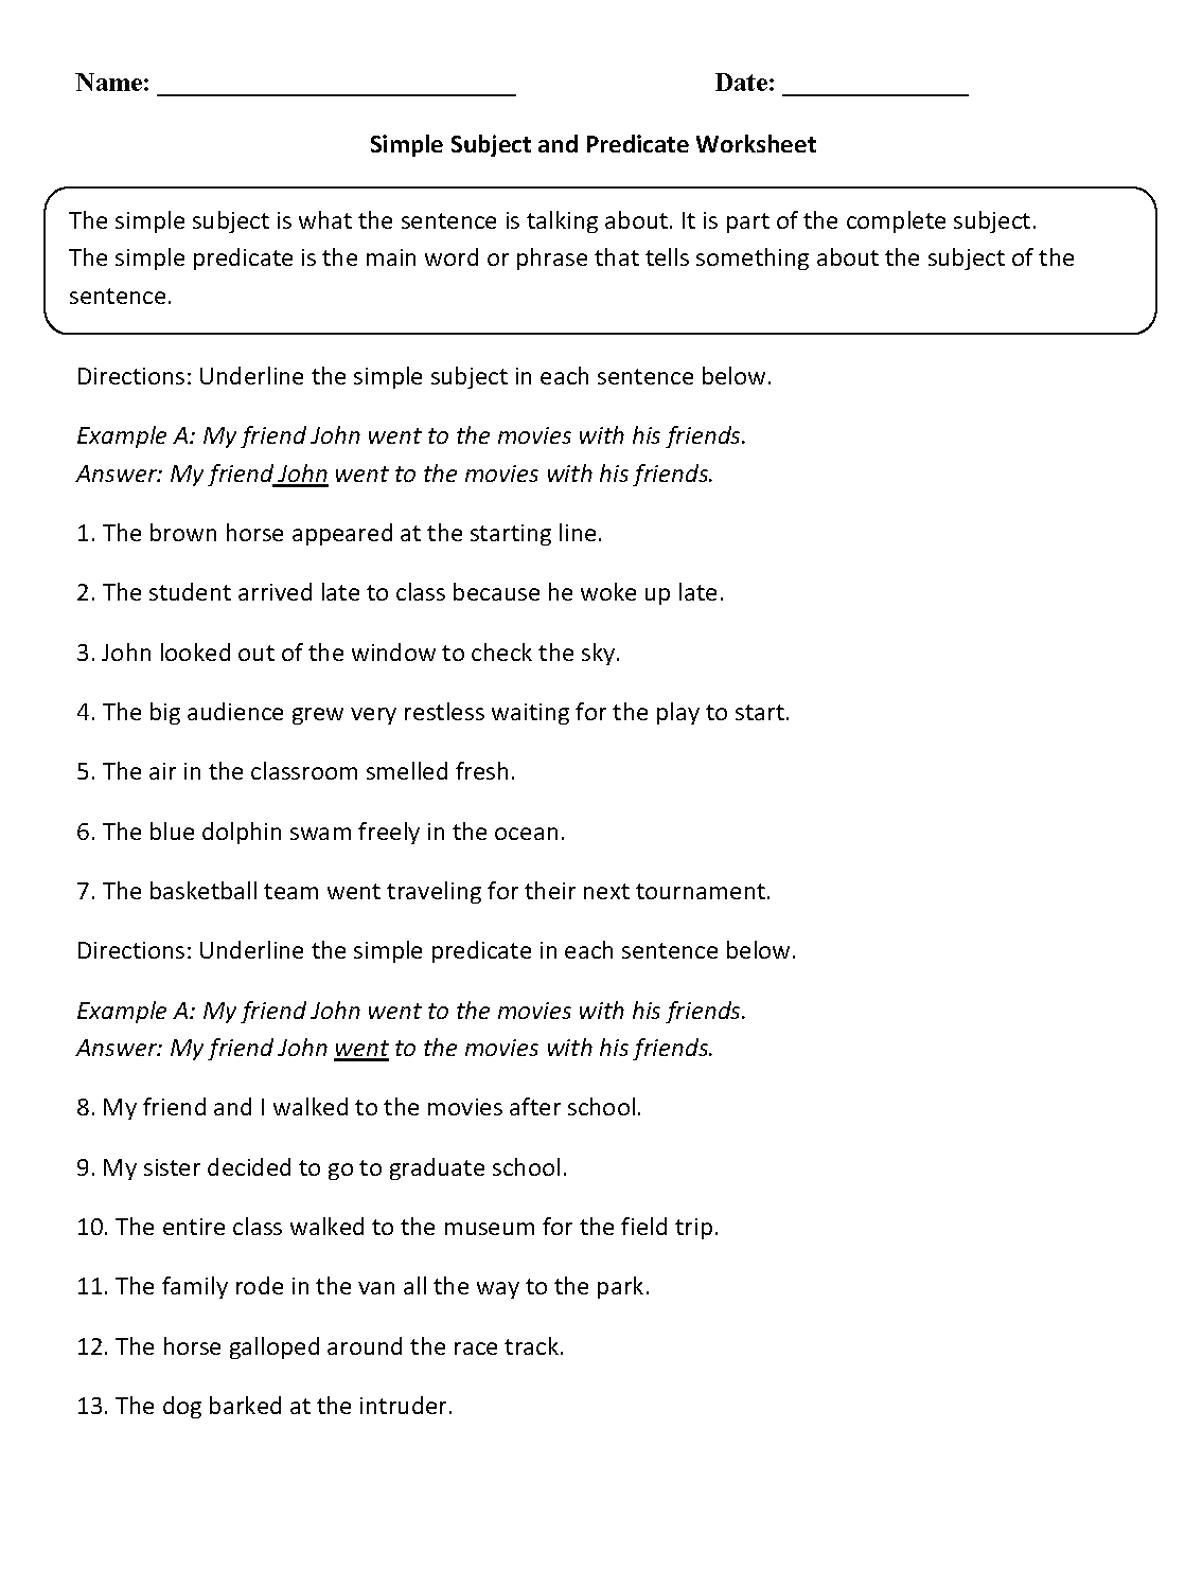 Subject Predicate Worksheet 6th Grade Simple Subject and Predicate Worksheet In 2020